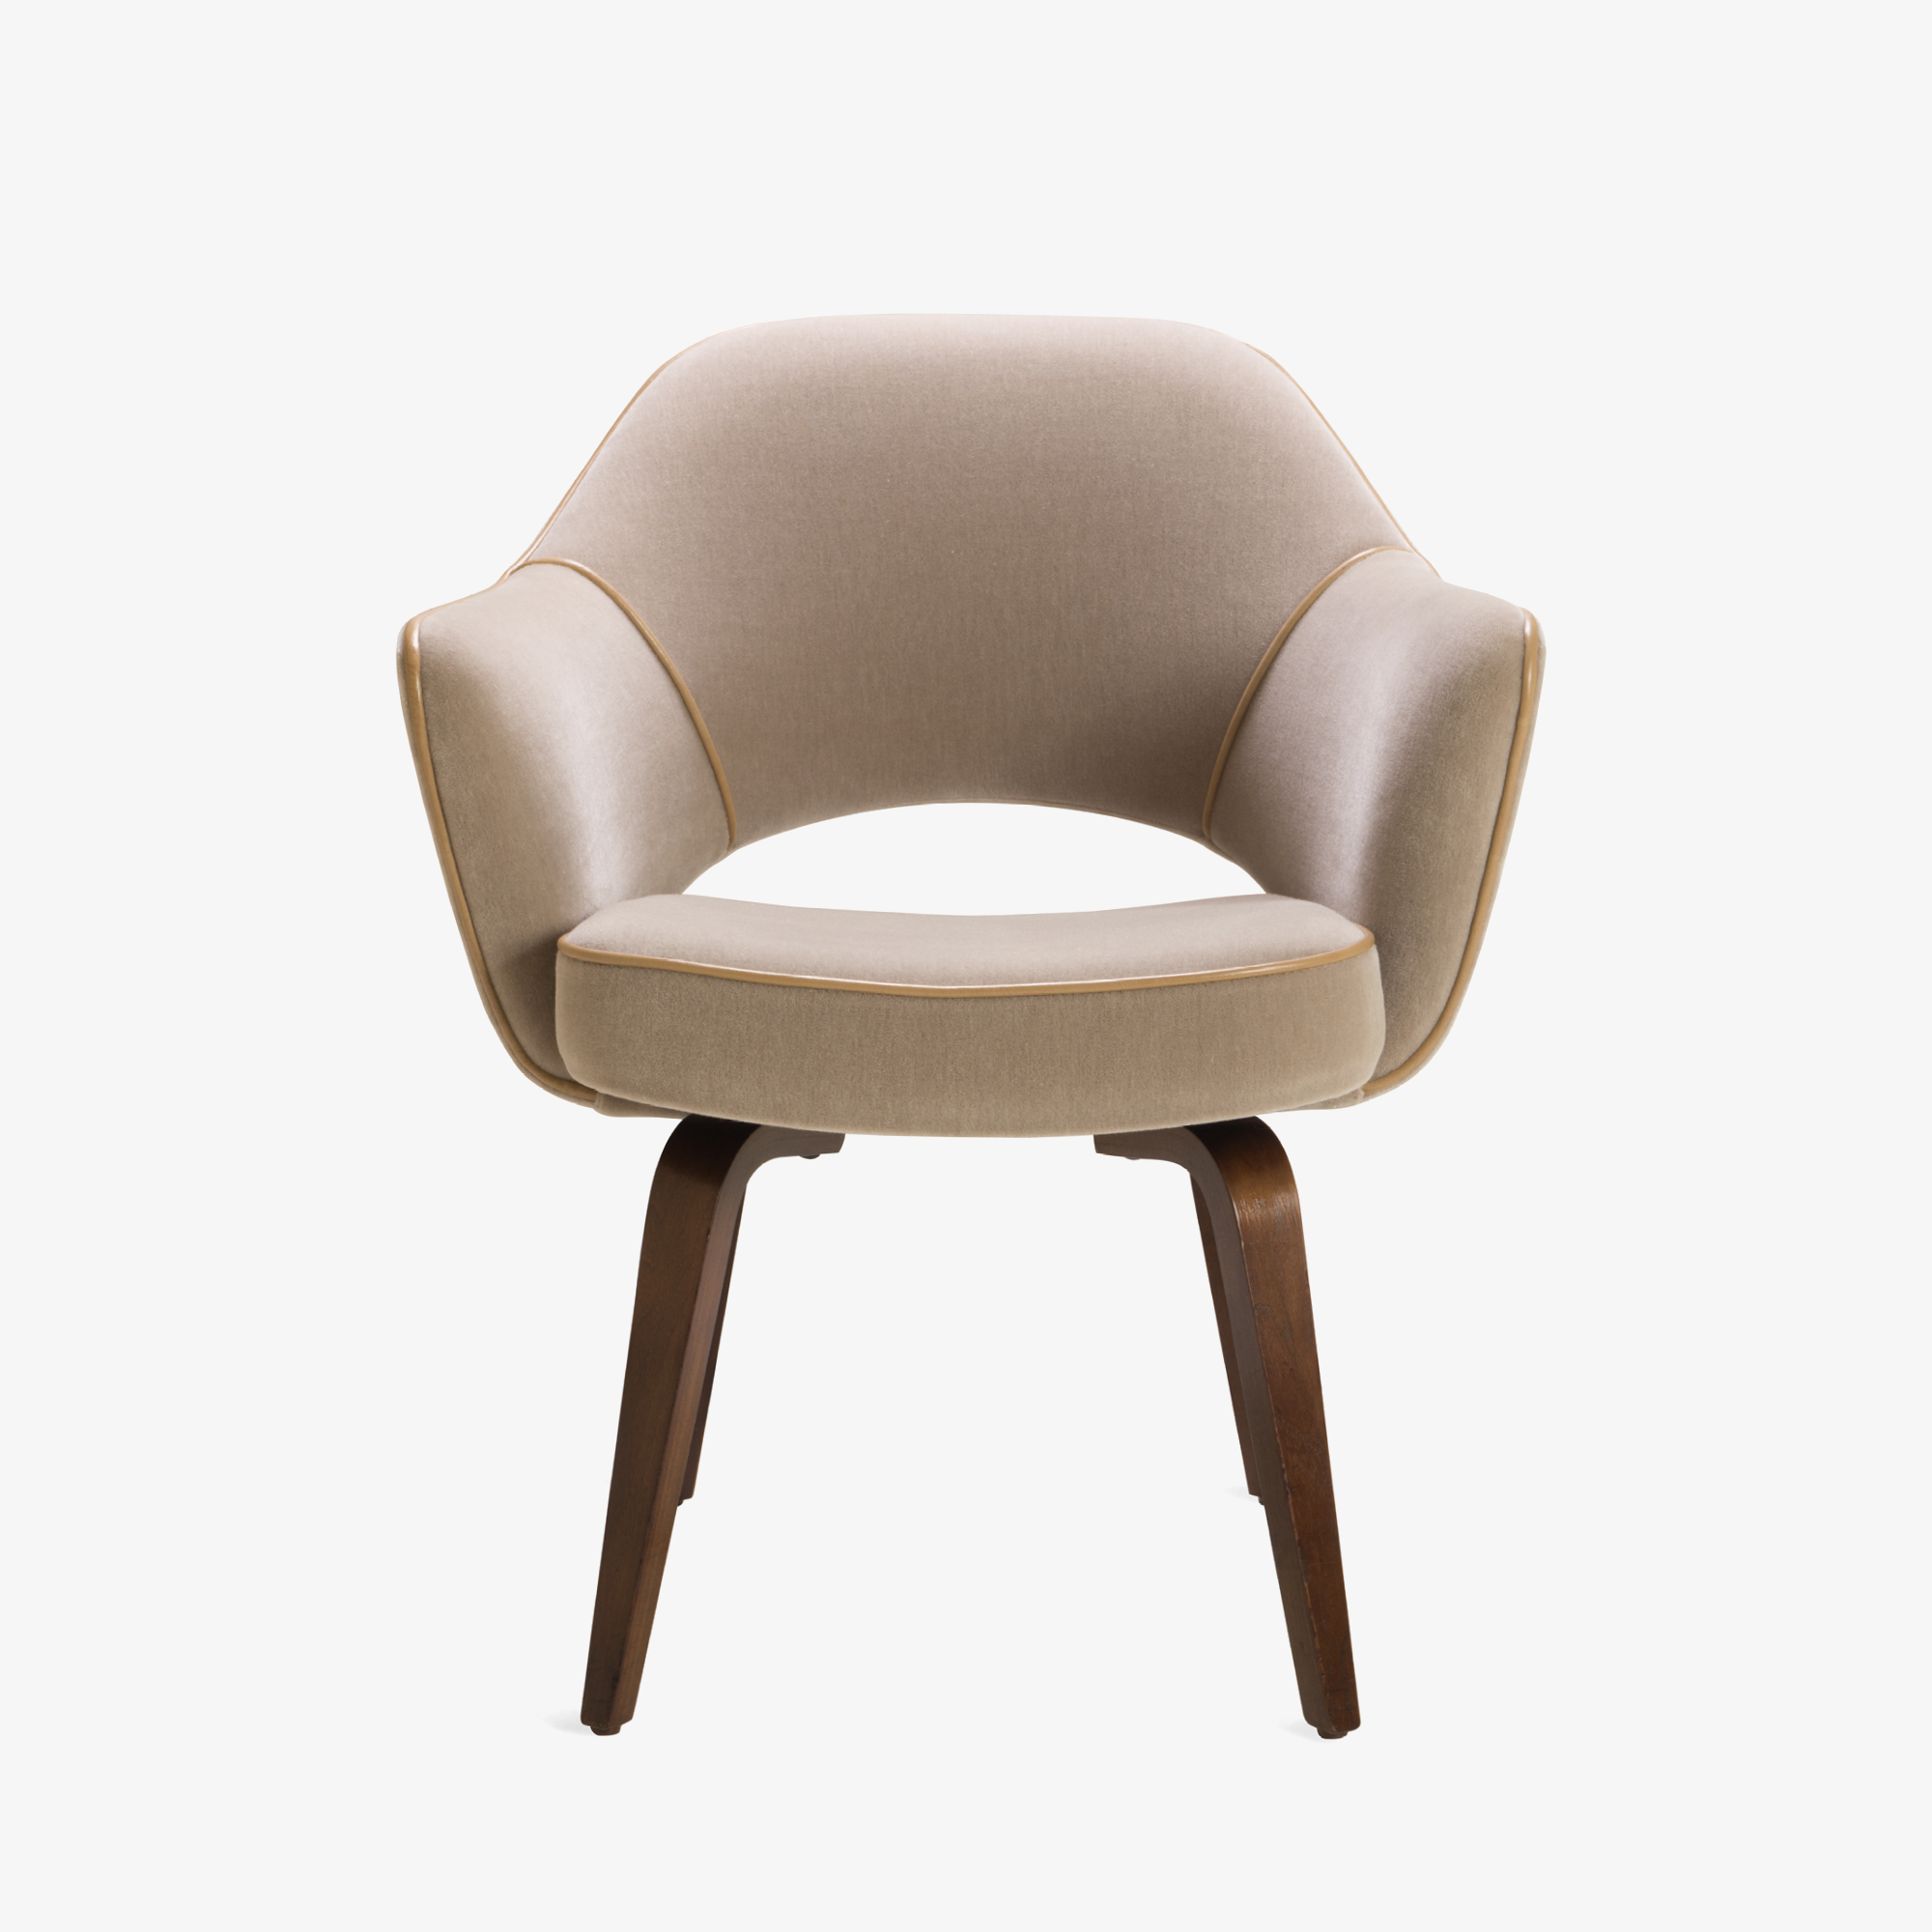 Saarinen Executive Arm Chair With Walnut Legs In Mohair And Leather Piping    Image 2 Of